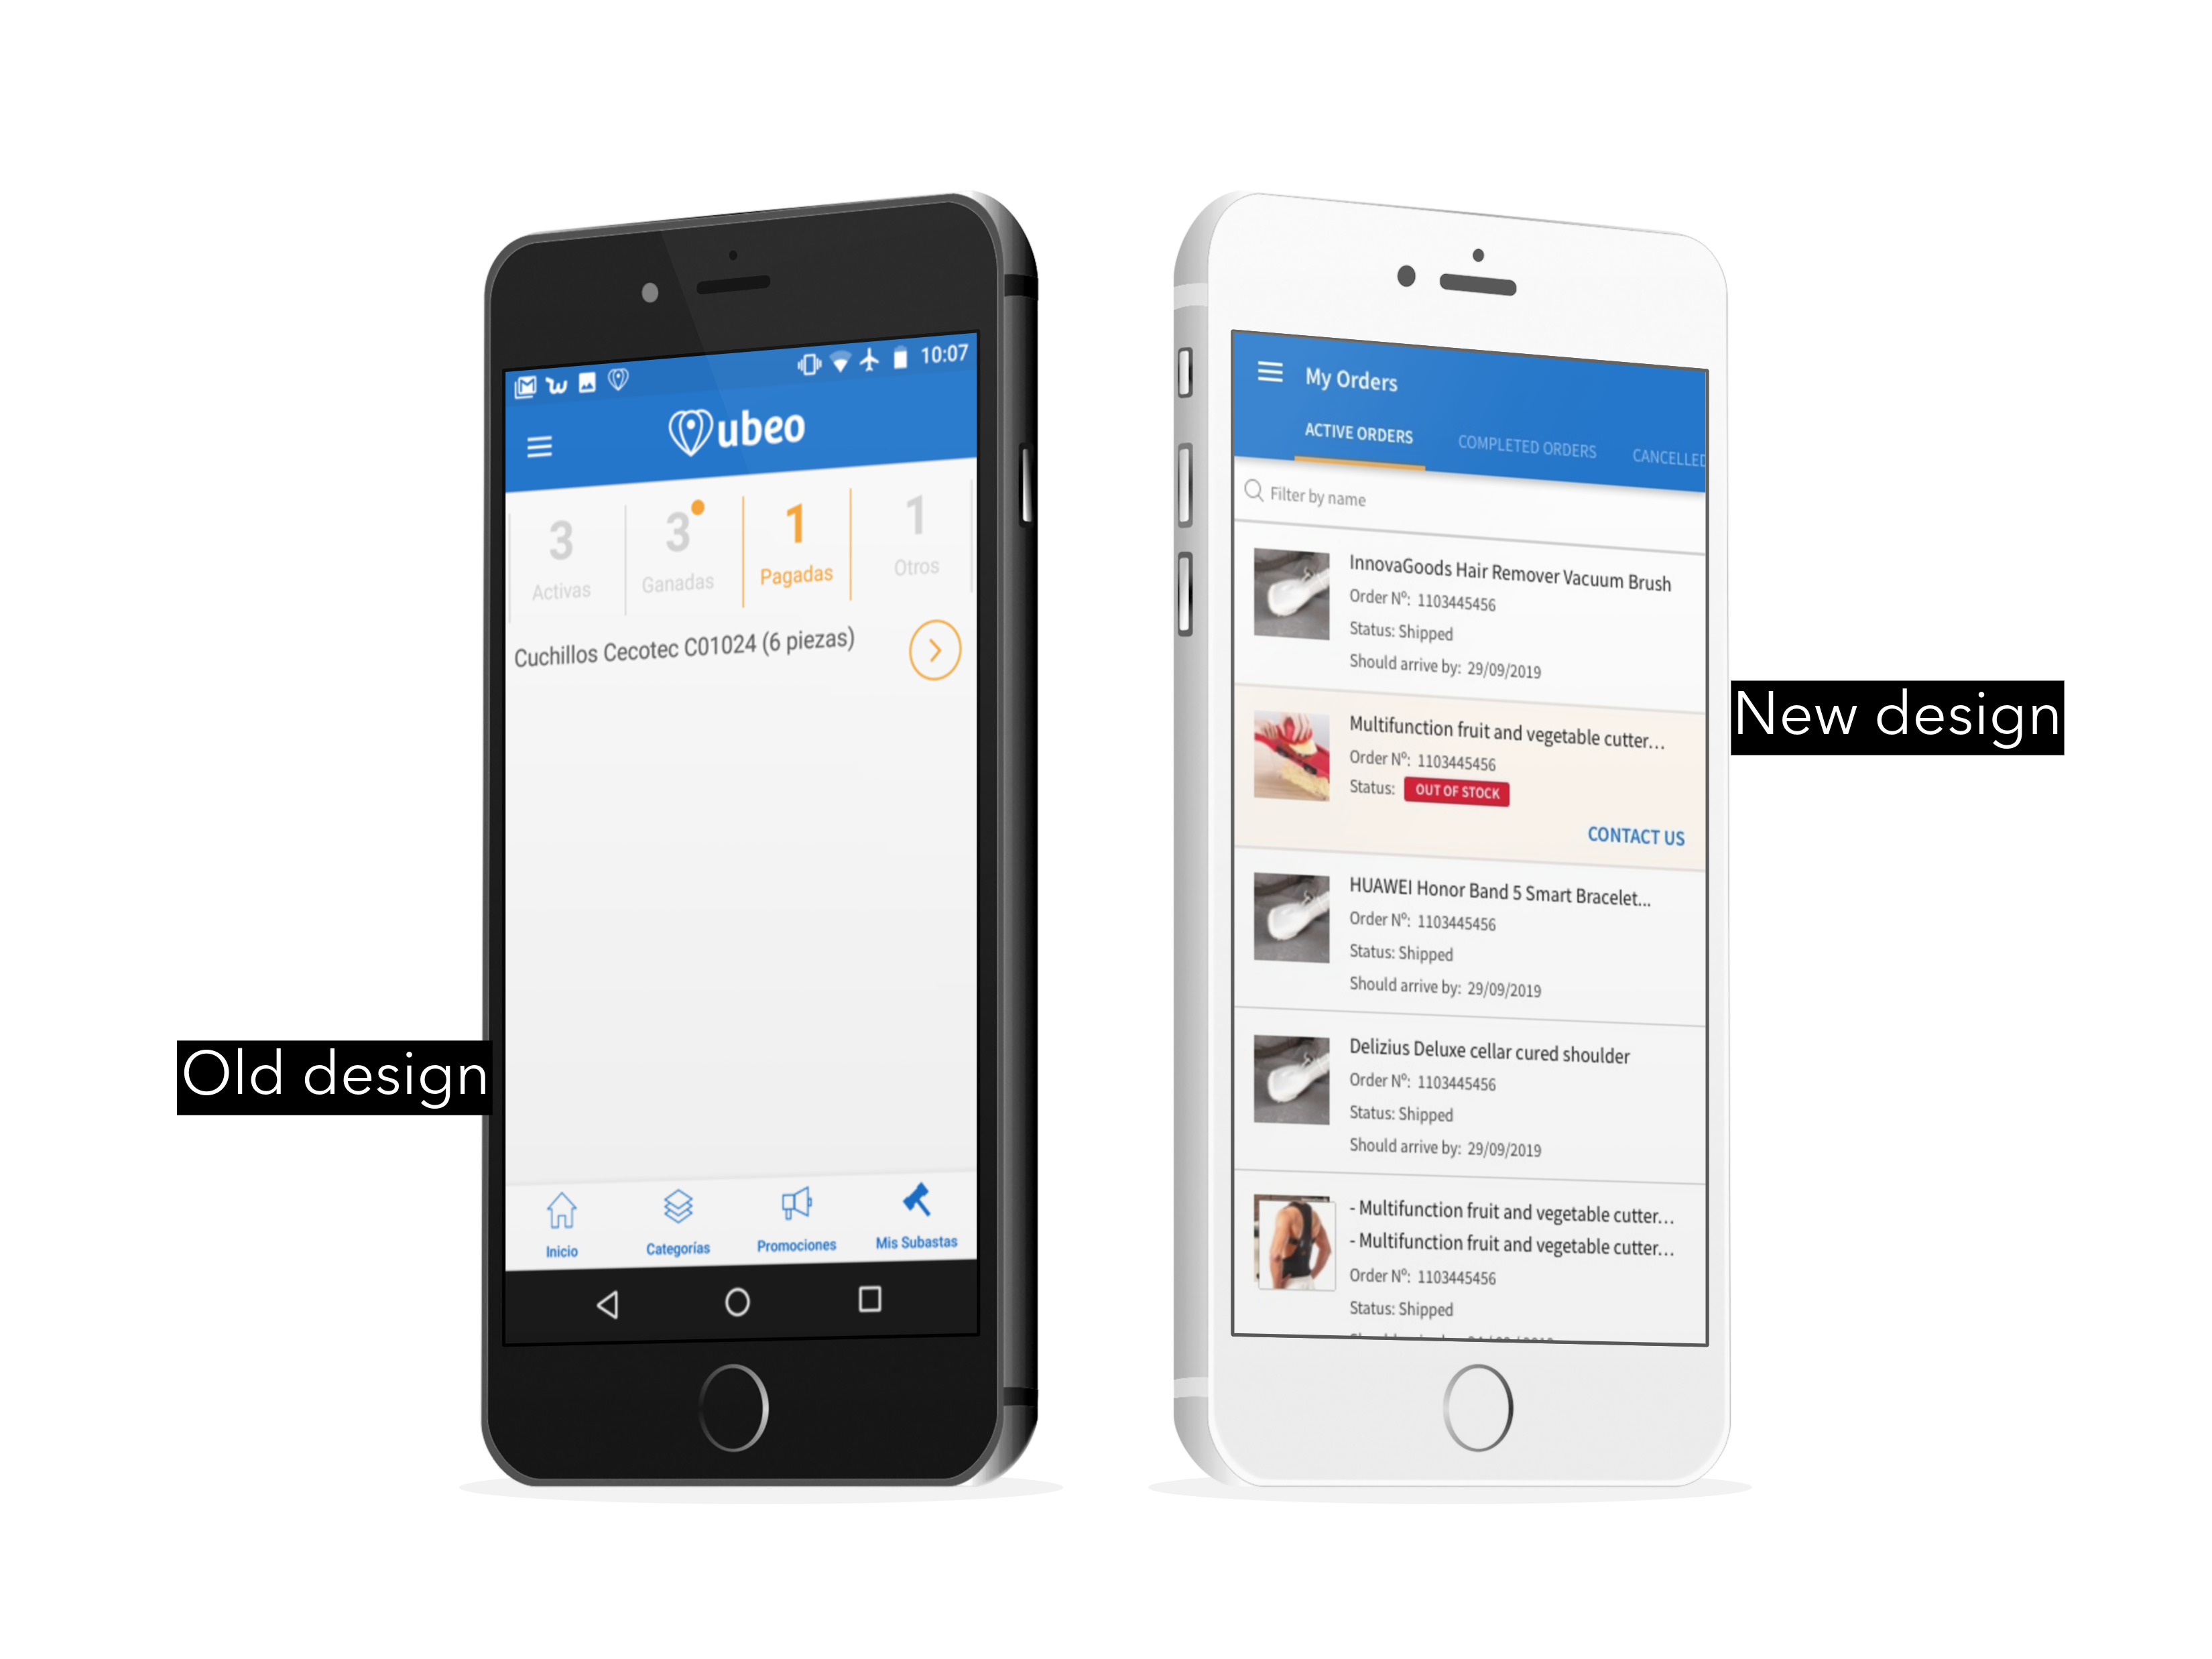 Ecommerce android app redesign